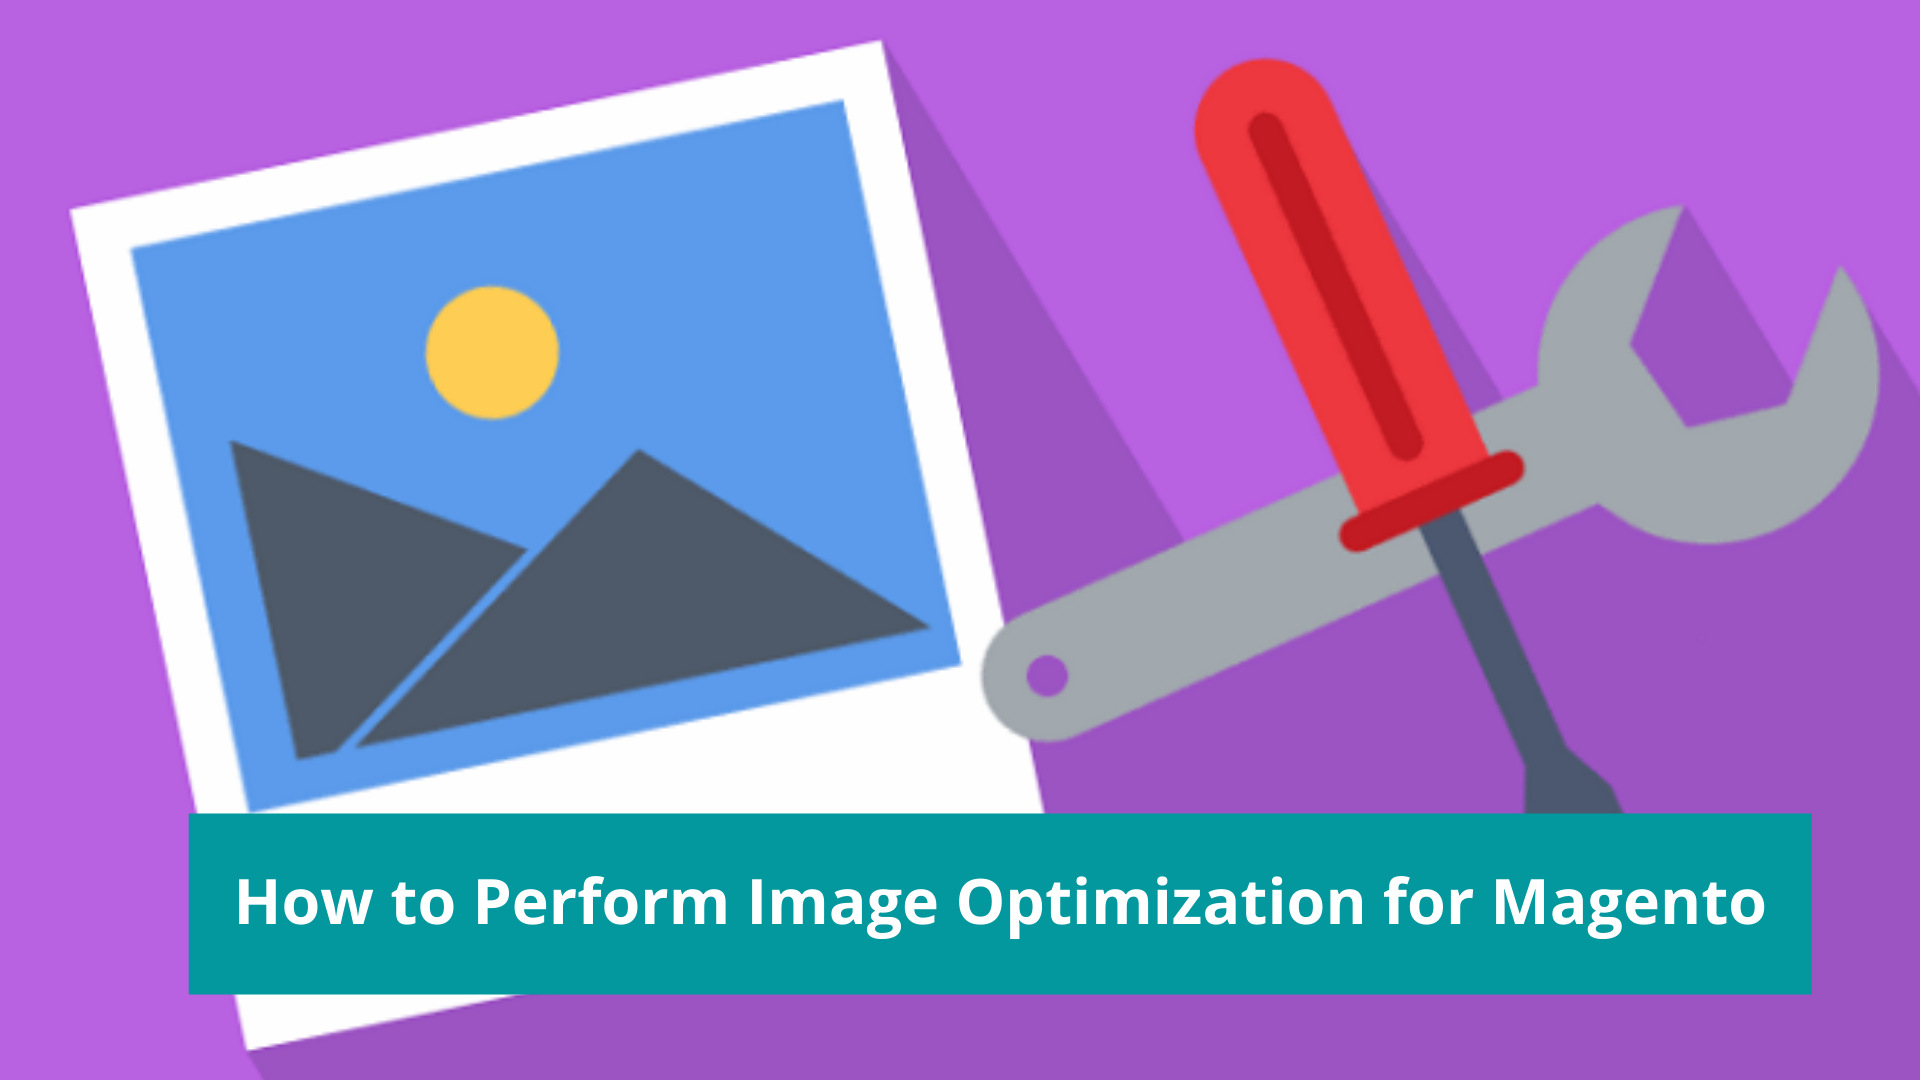 How to Perform Image Optimization for Magento to Improve Store Performance